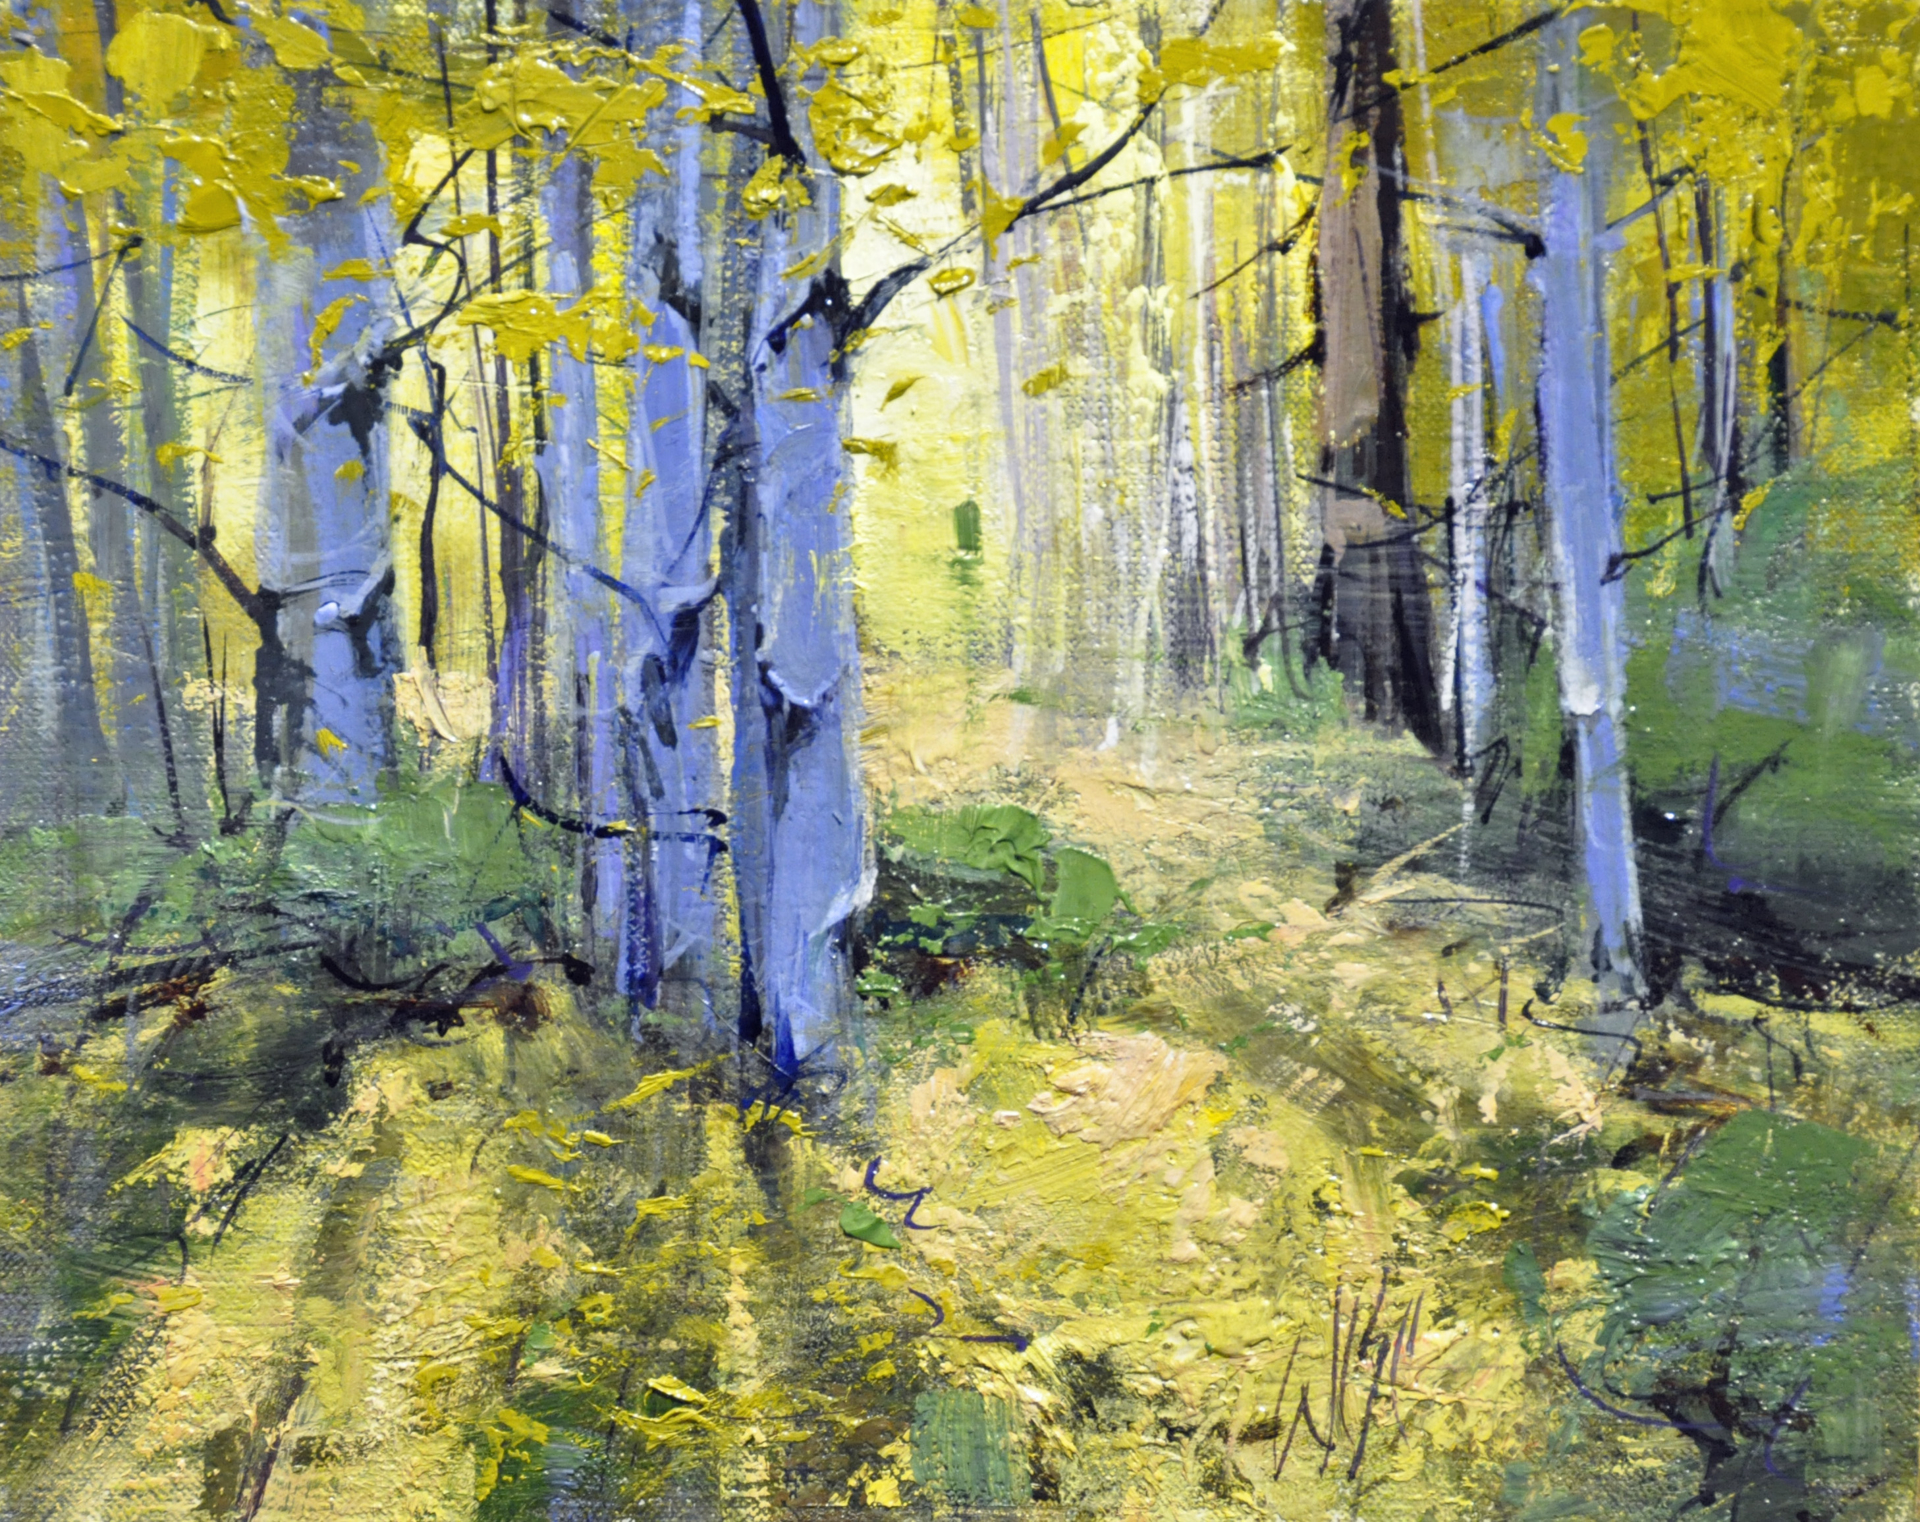 Yellow Woods I by Mike Wise